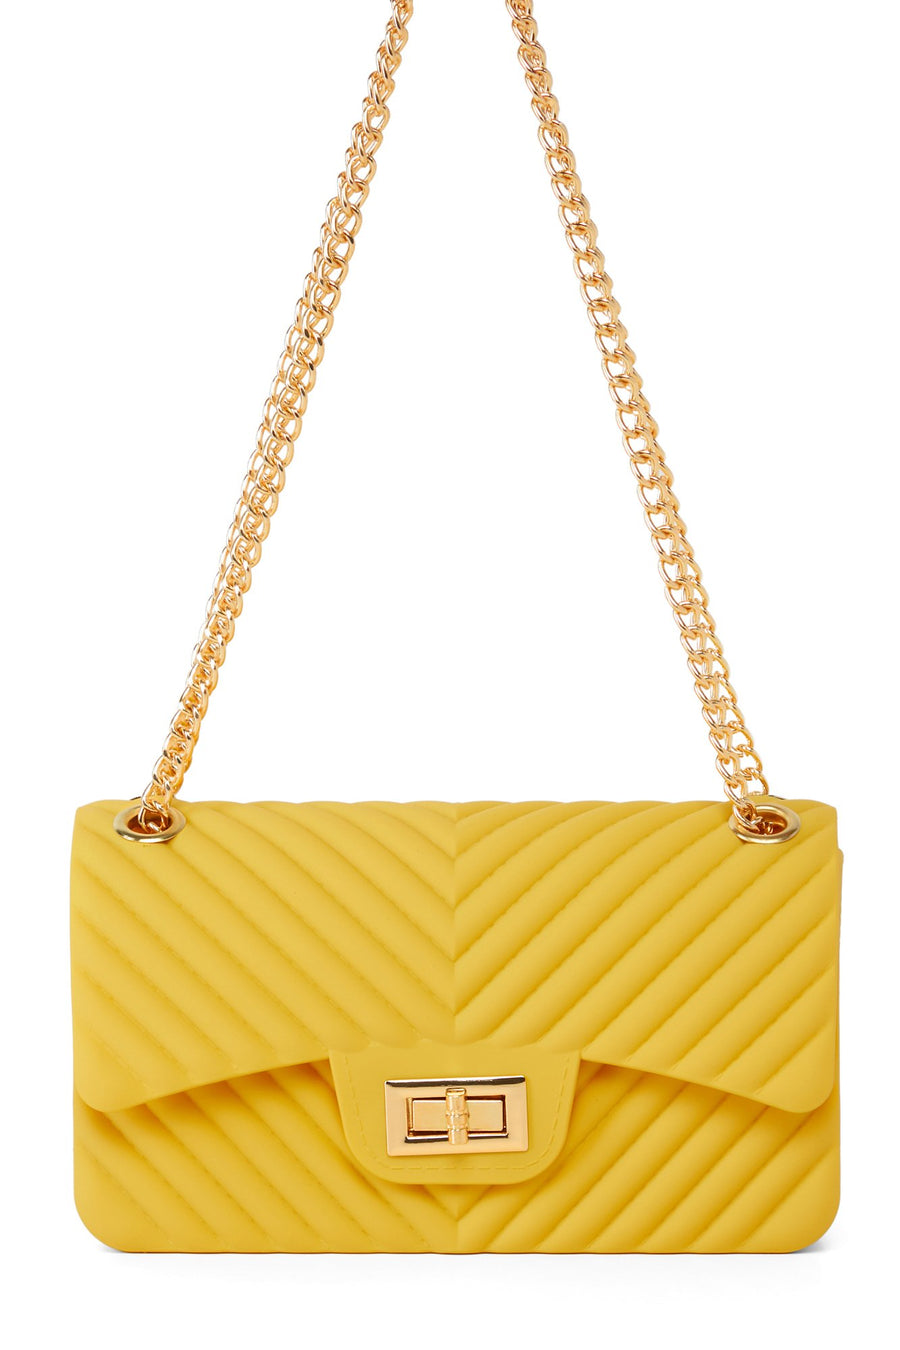 Extra Lined Up Bag - Mustard